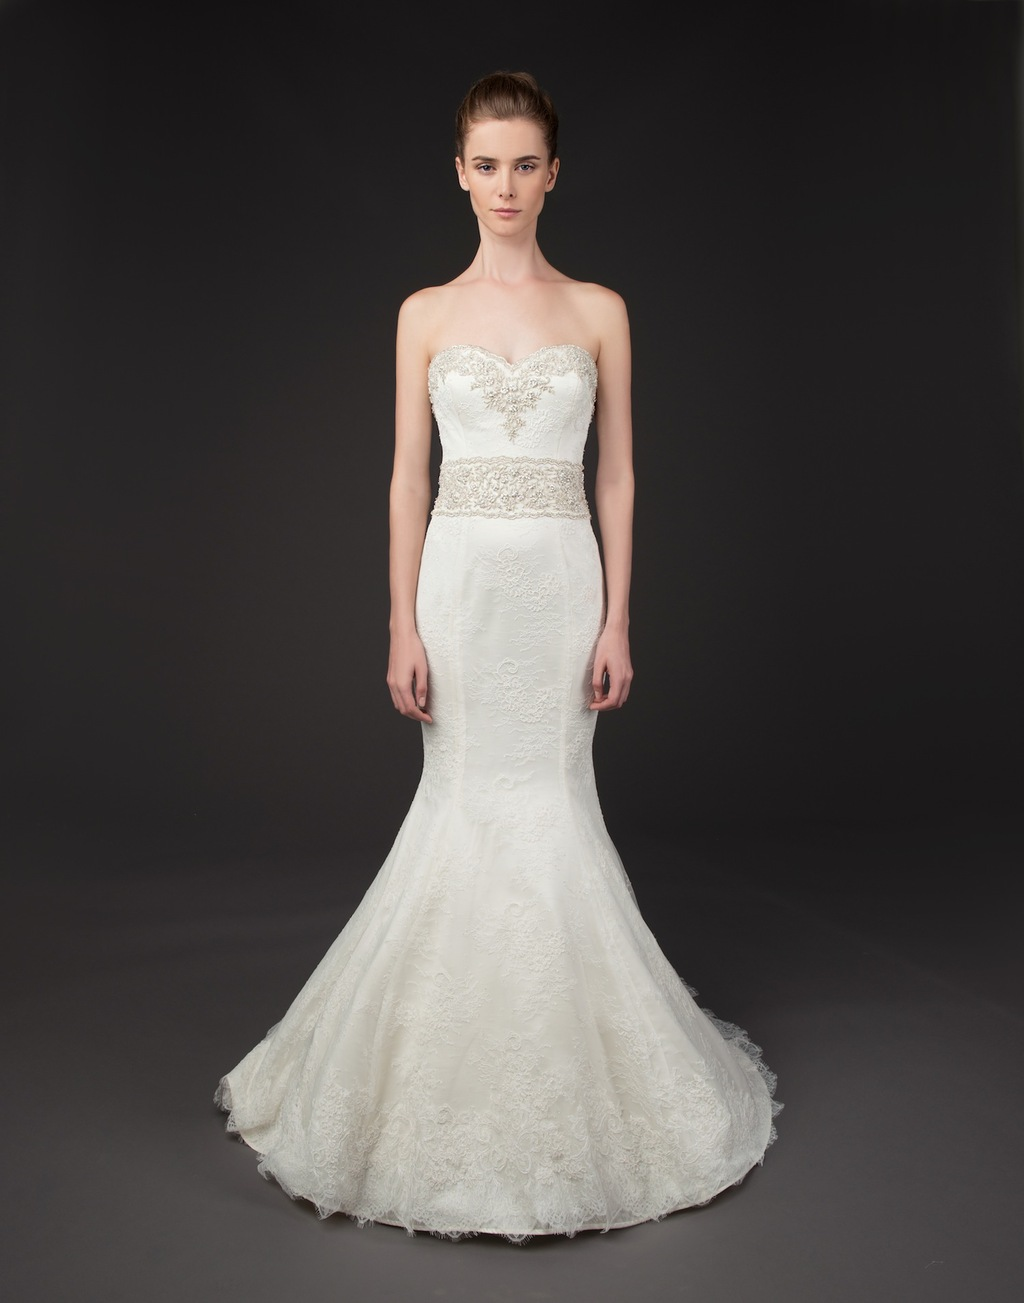 Marjorie_gown_by_winnie_couture_blush_label_2014.full